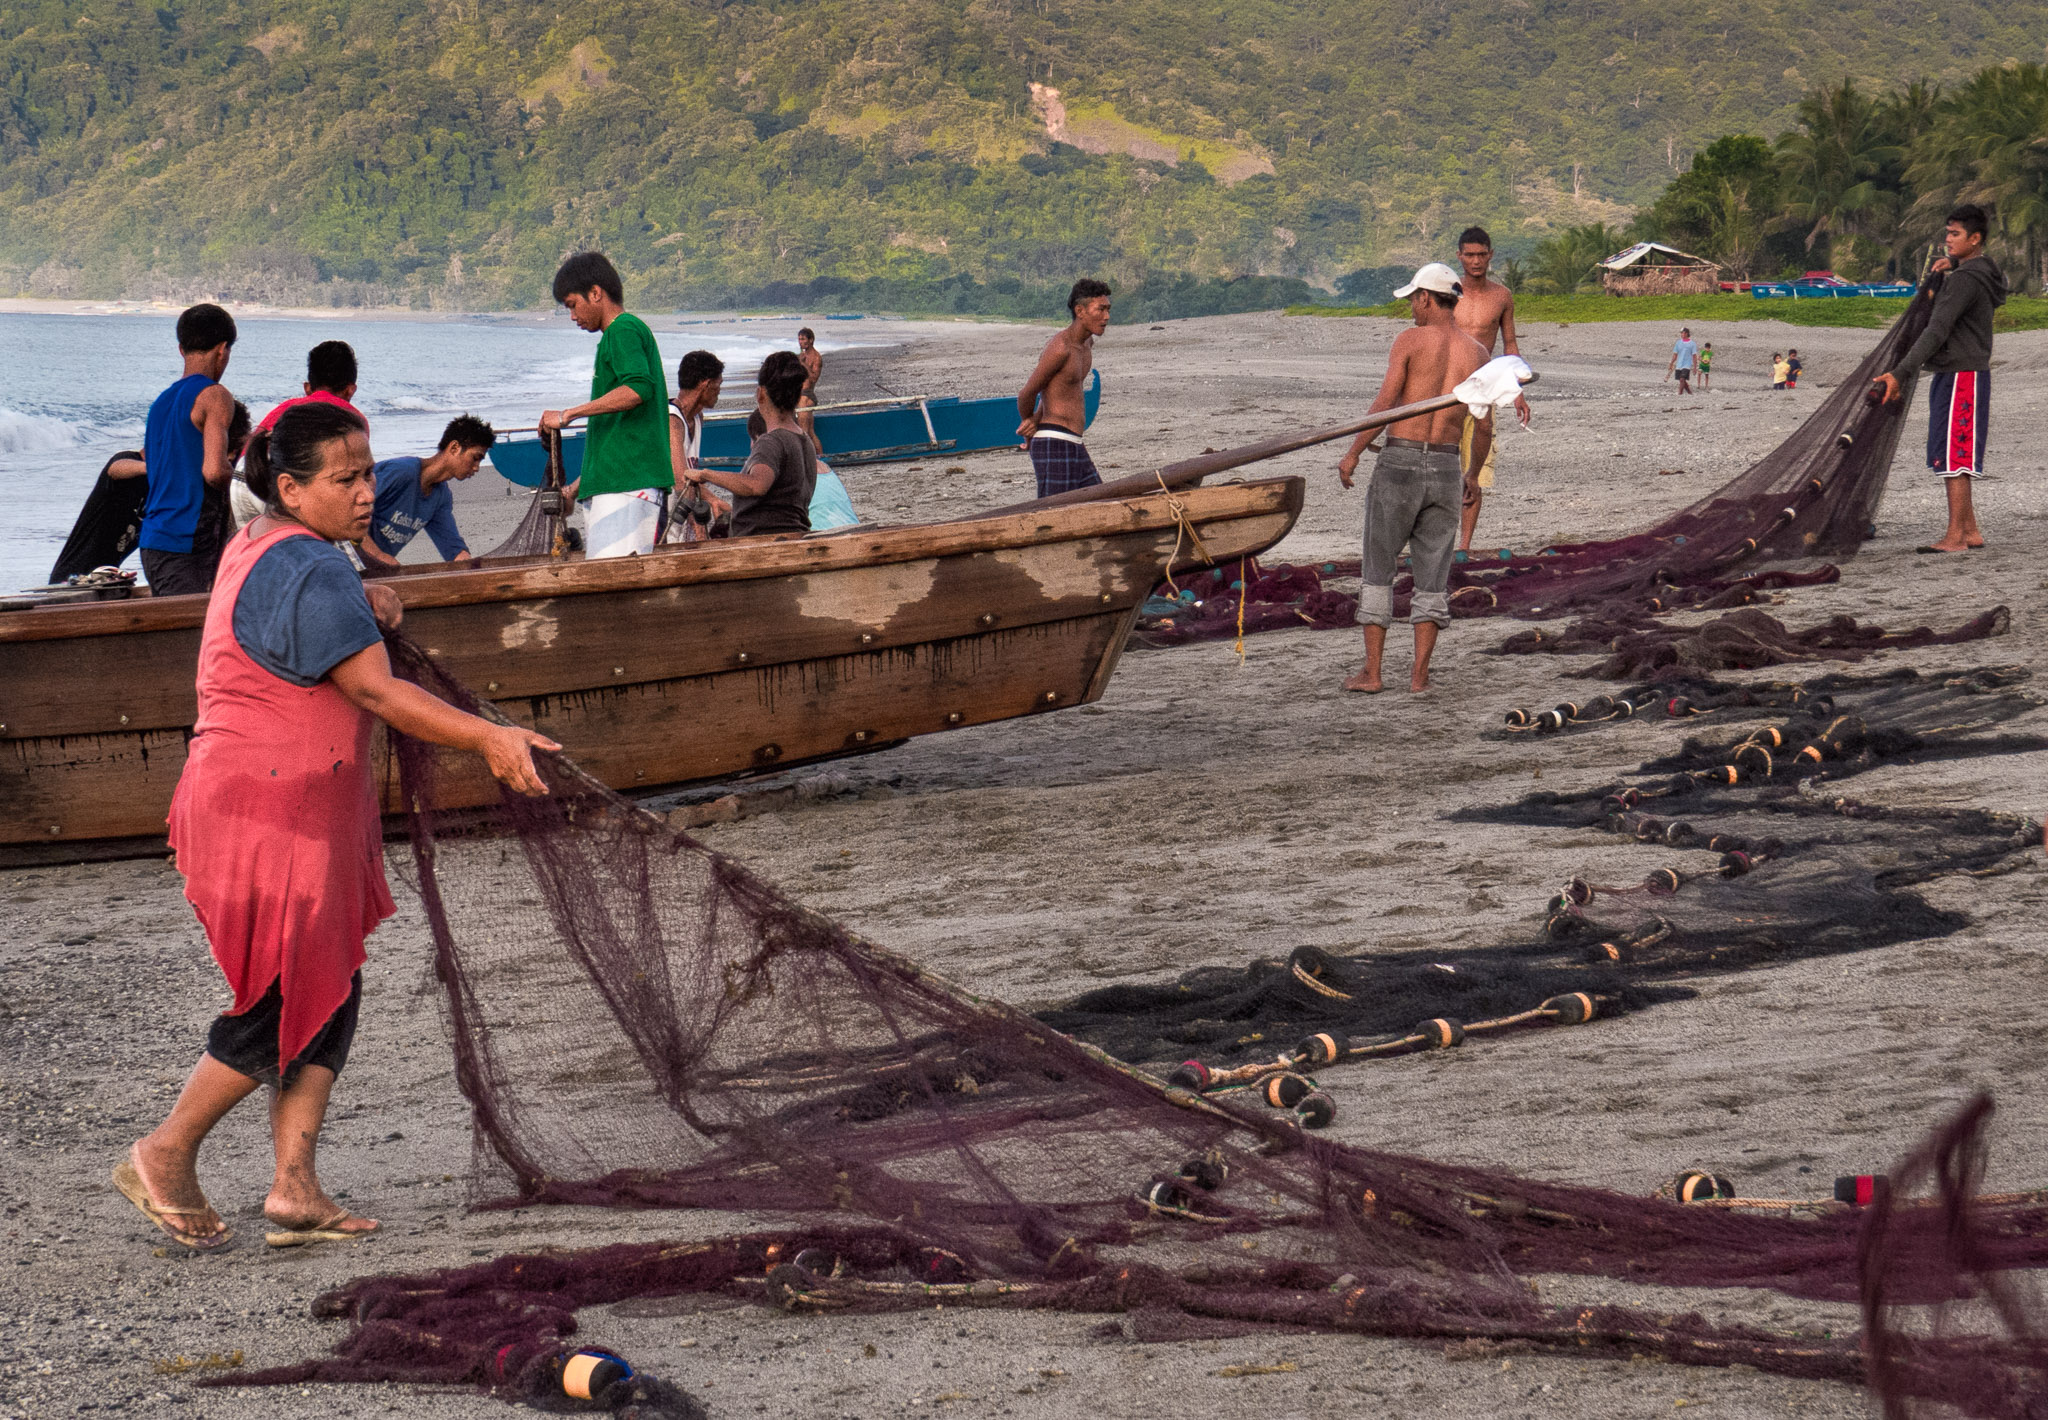 <p>Village fishing in Pagudpud, Philippines. Photo by Wayne S. Grazio/Flickr</p>